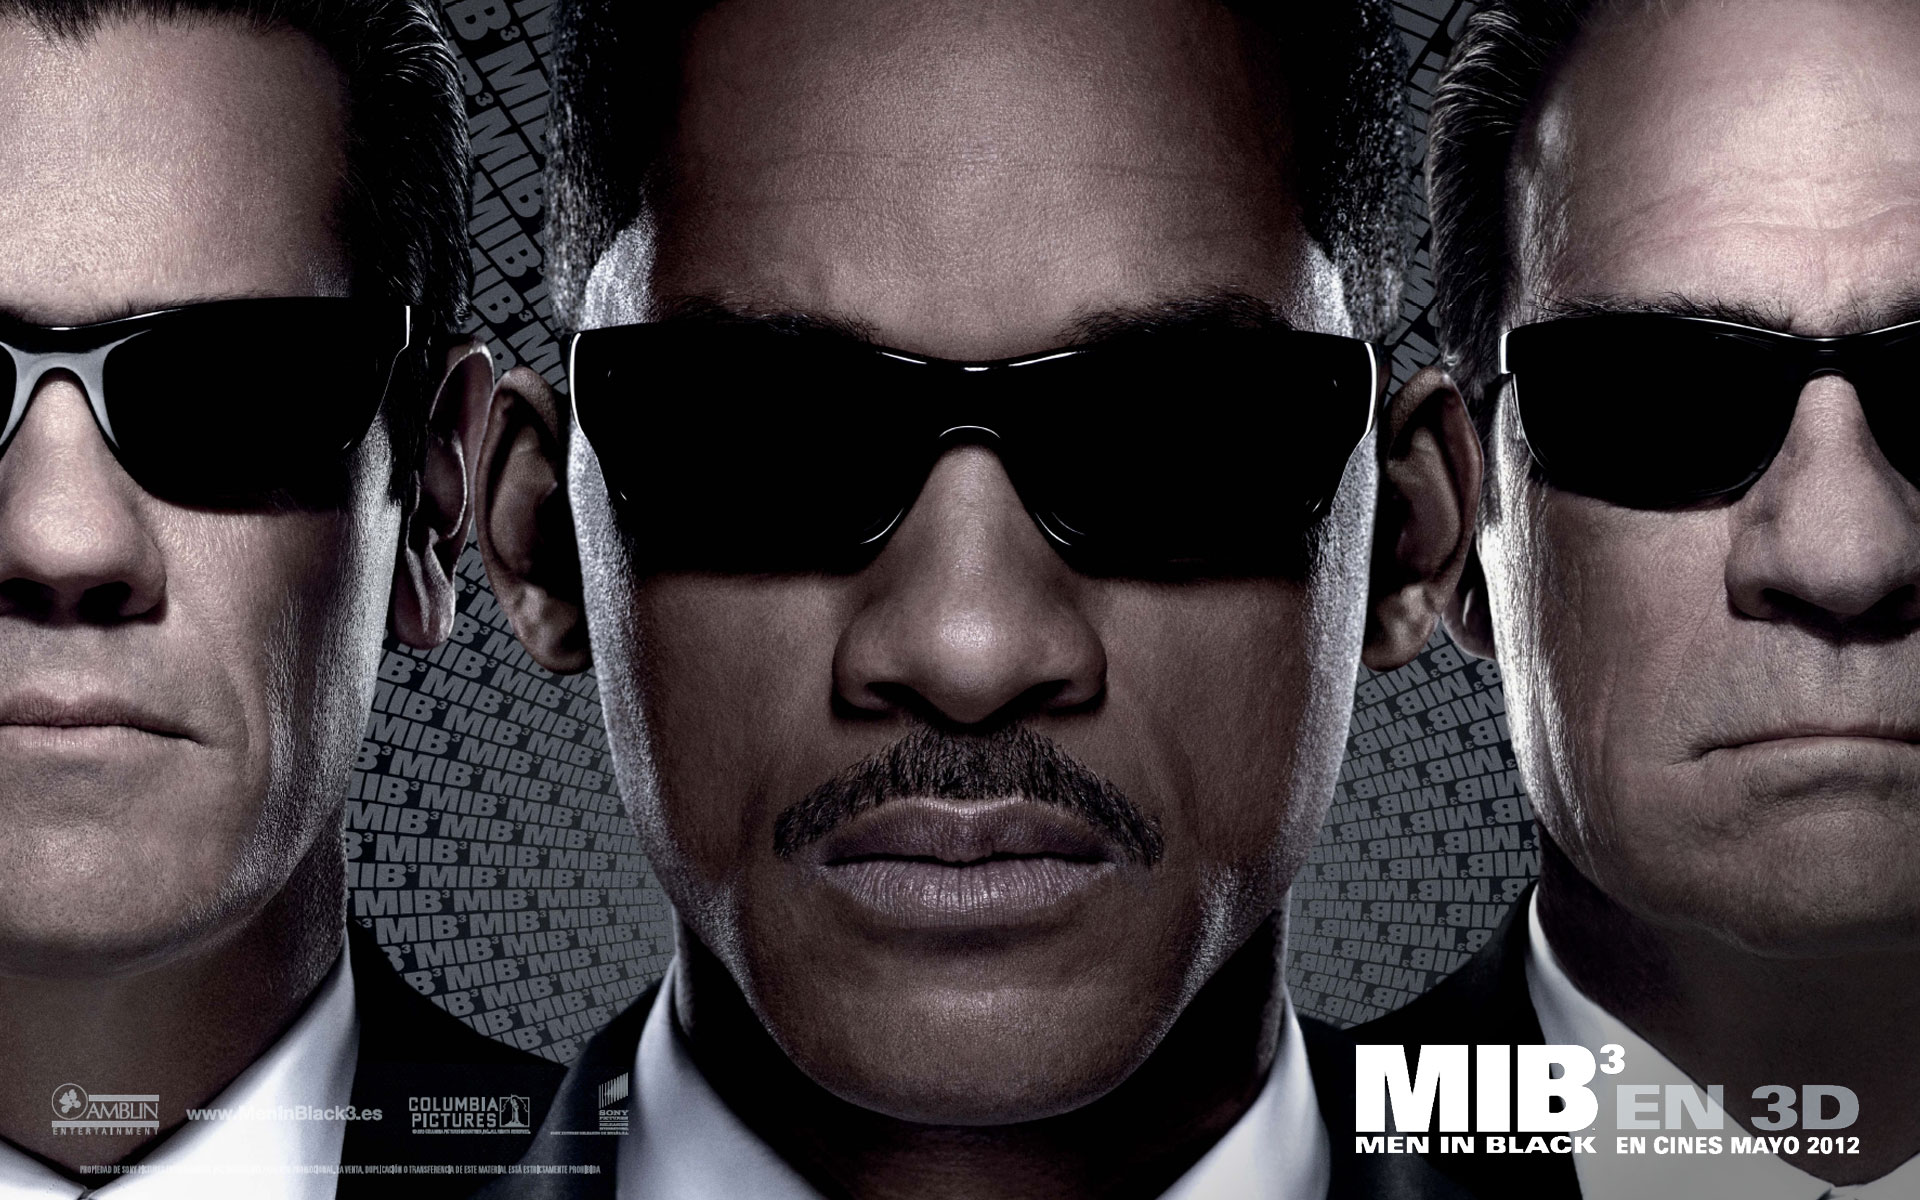 Wallpaper Men in Black 3 - Hombres de negro